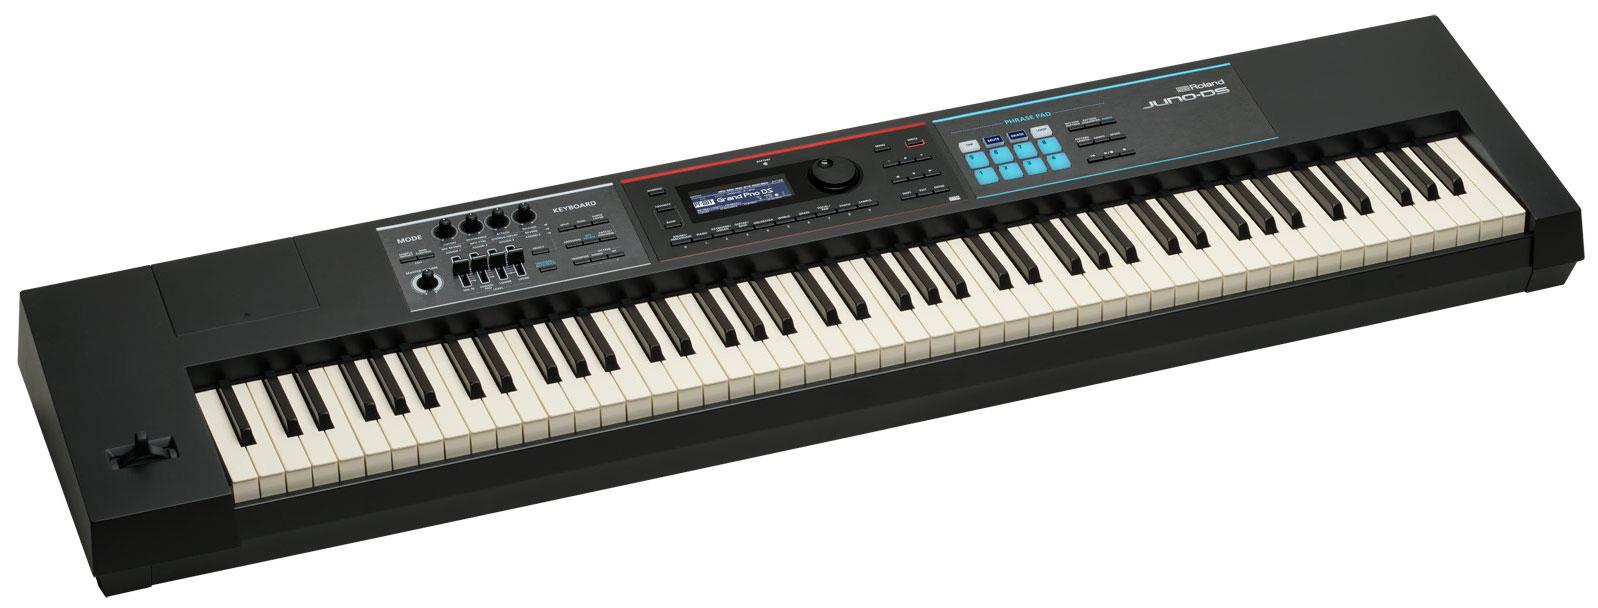 Roland Juno DS 88 Synthesizer